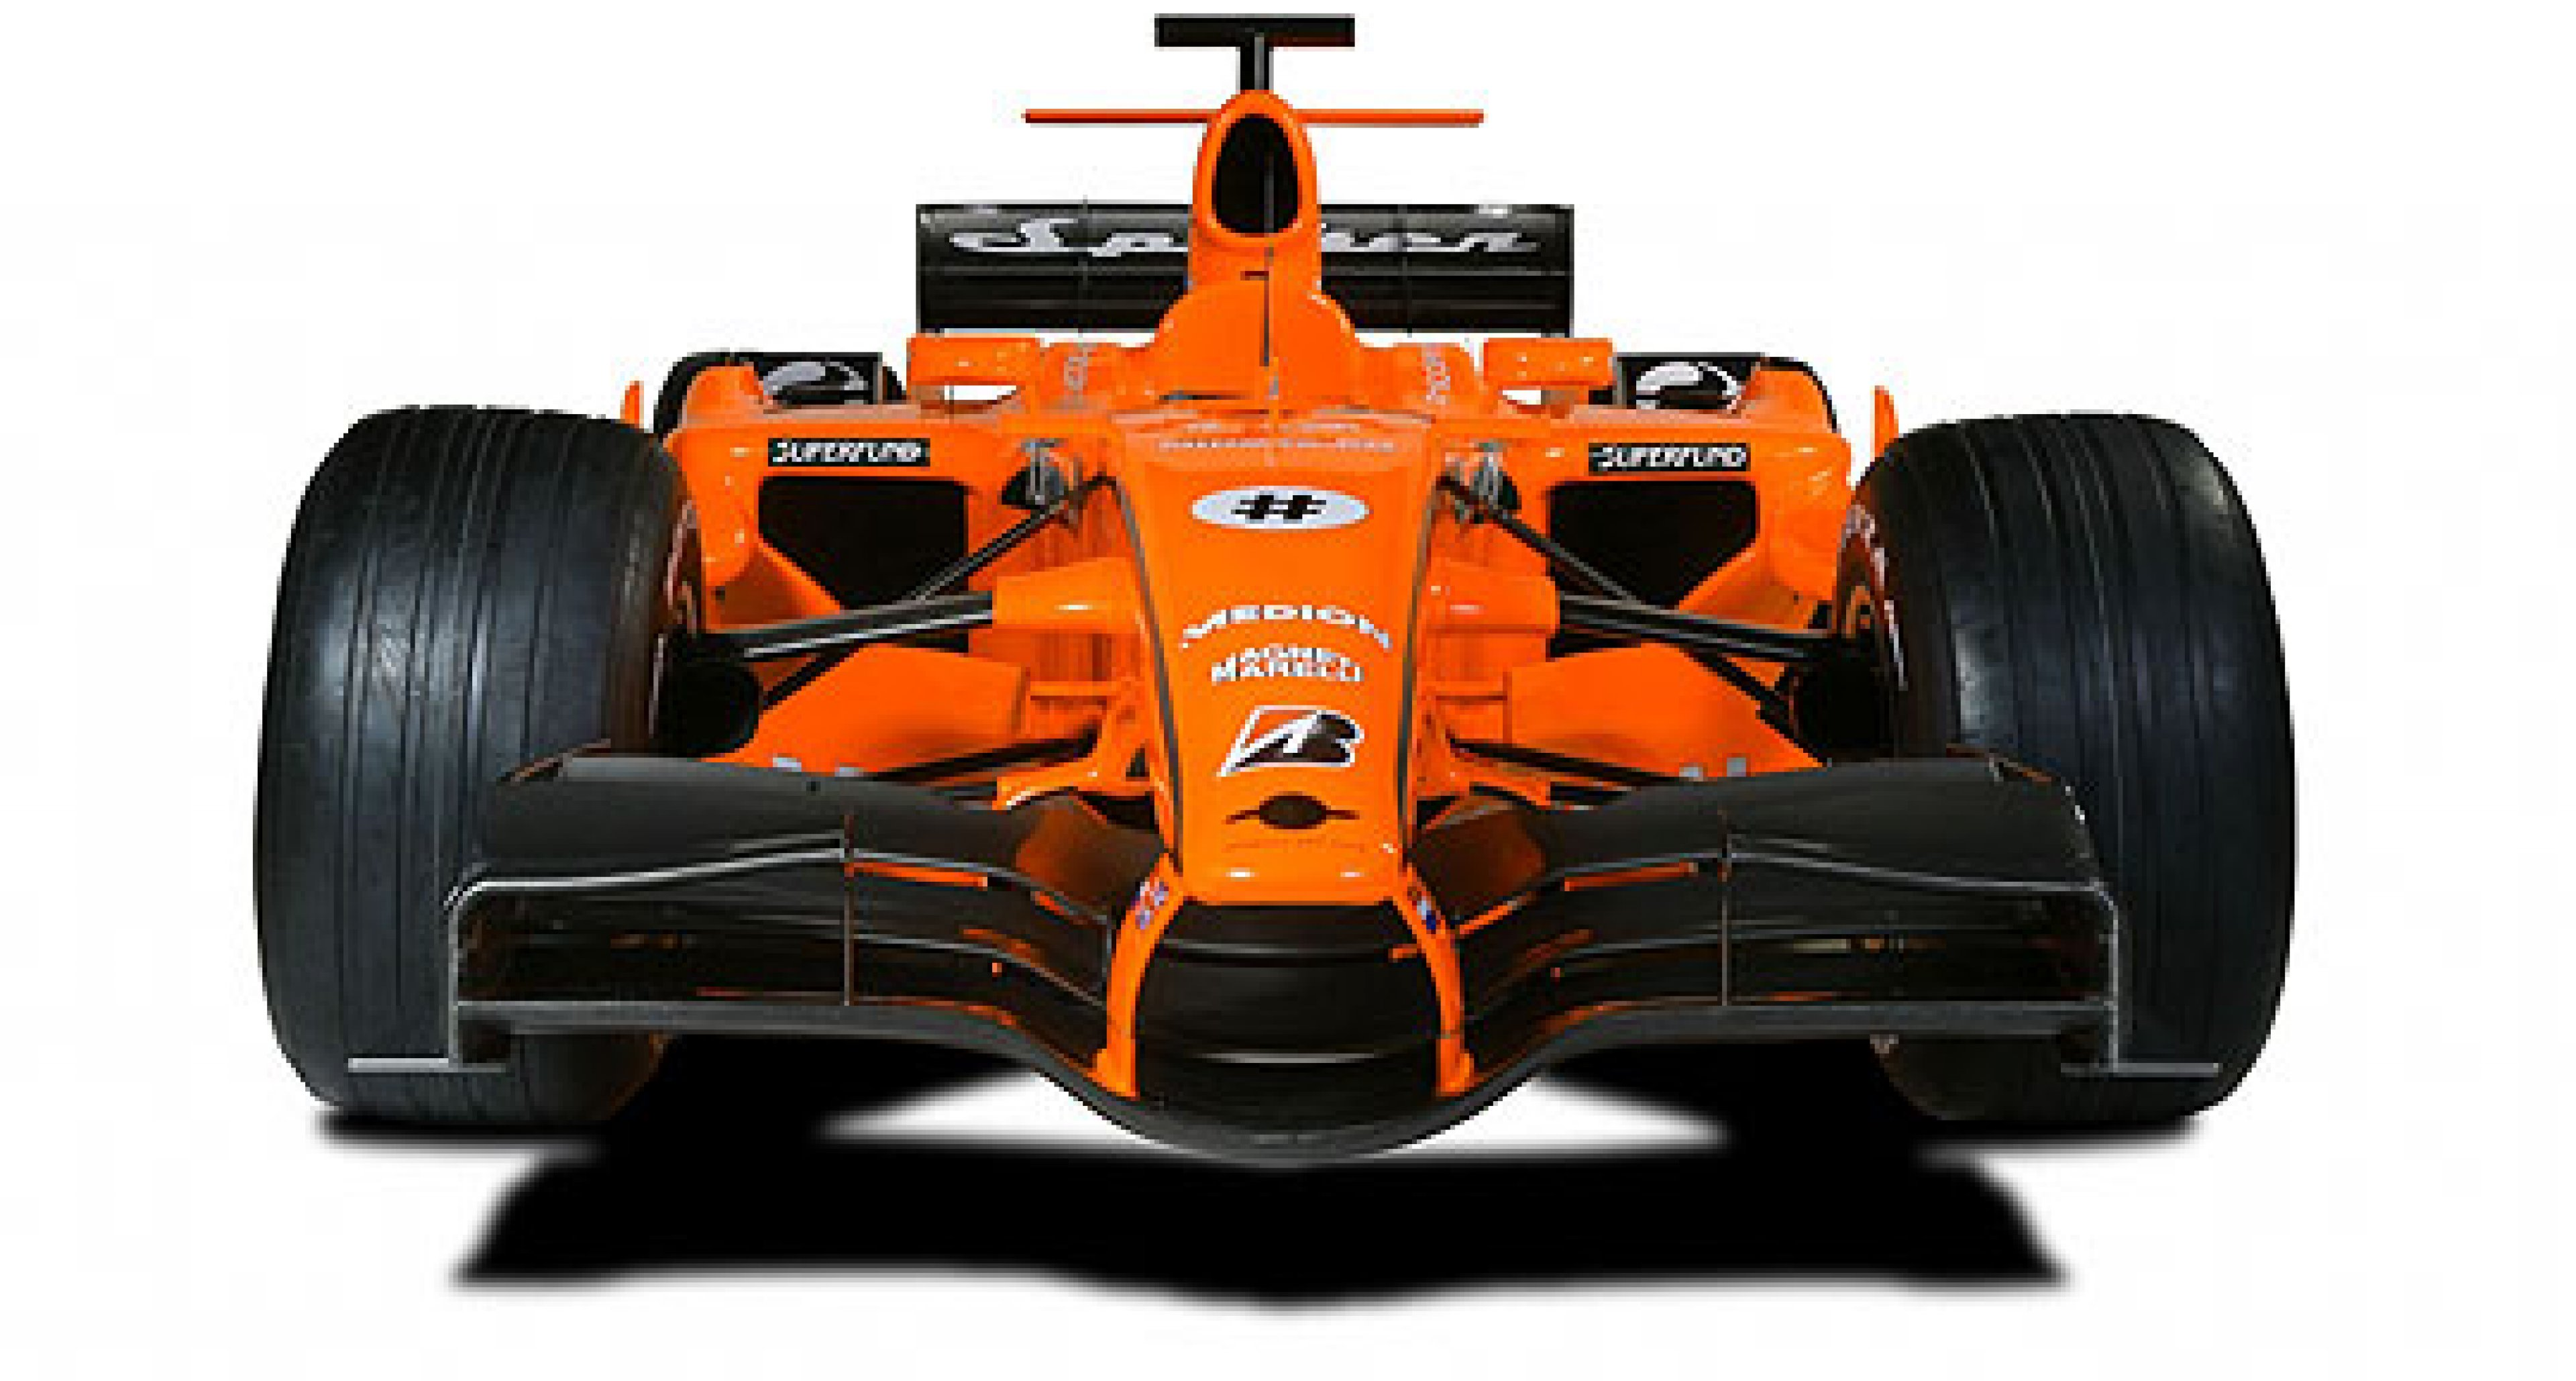 New Spyker Formula 1 launched at Silverstone